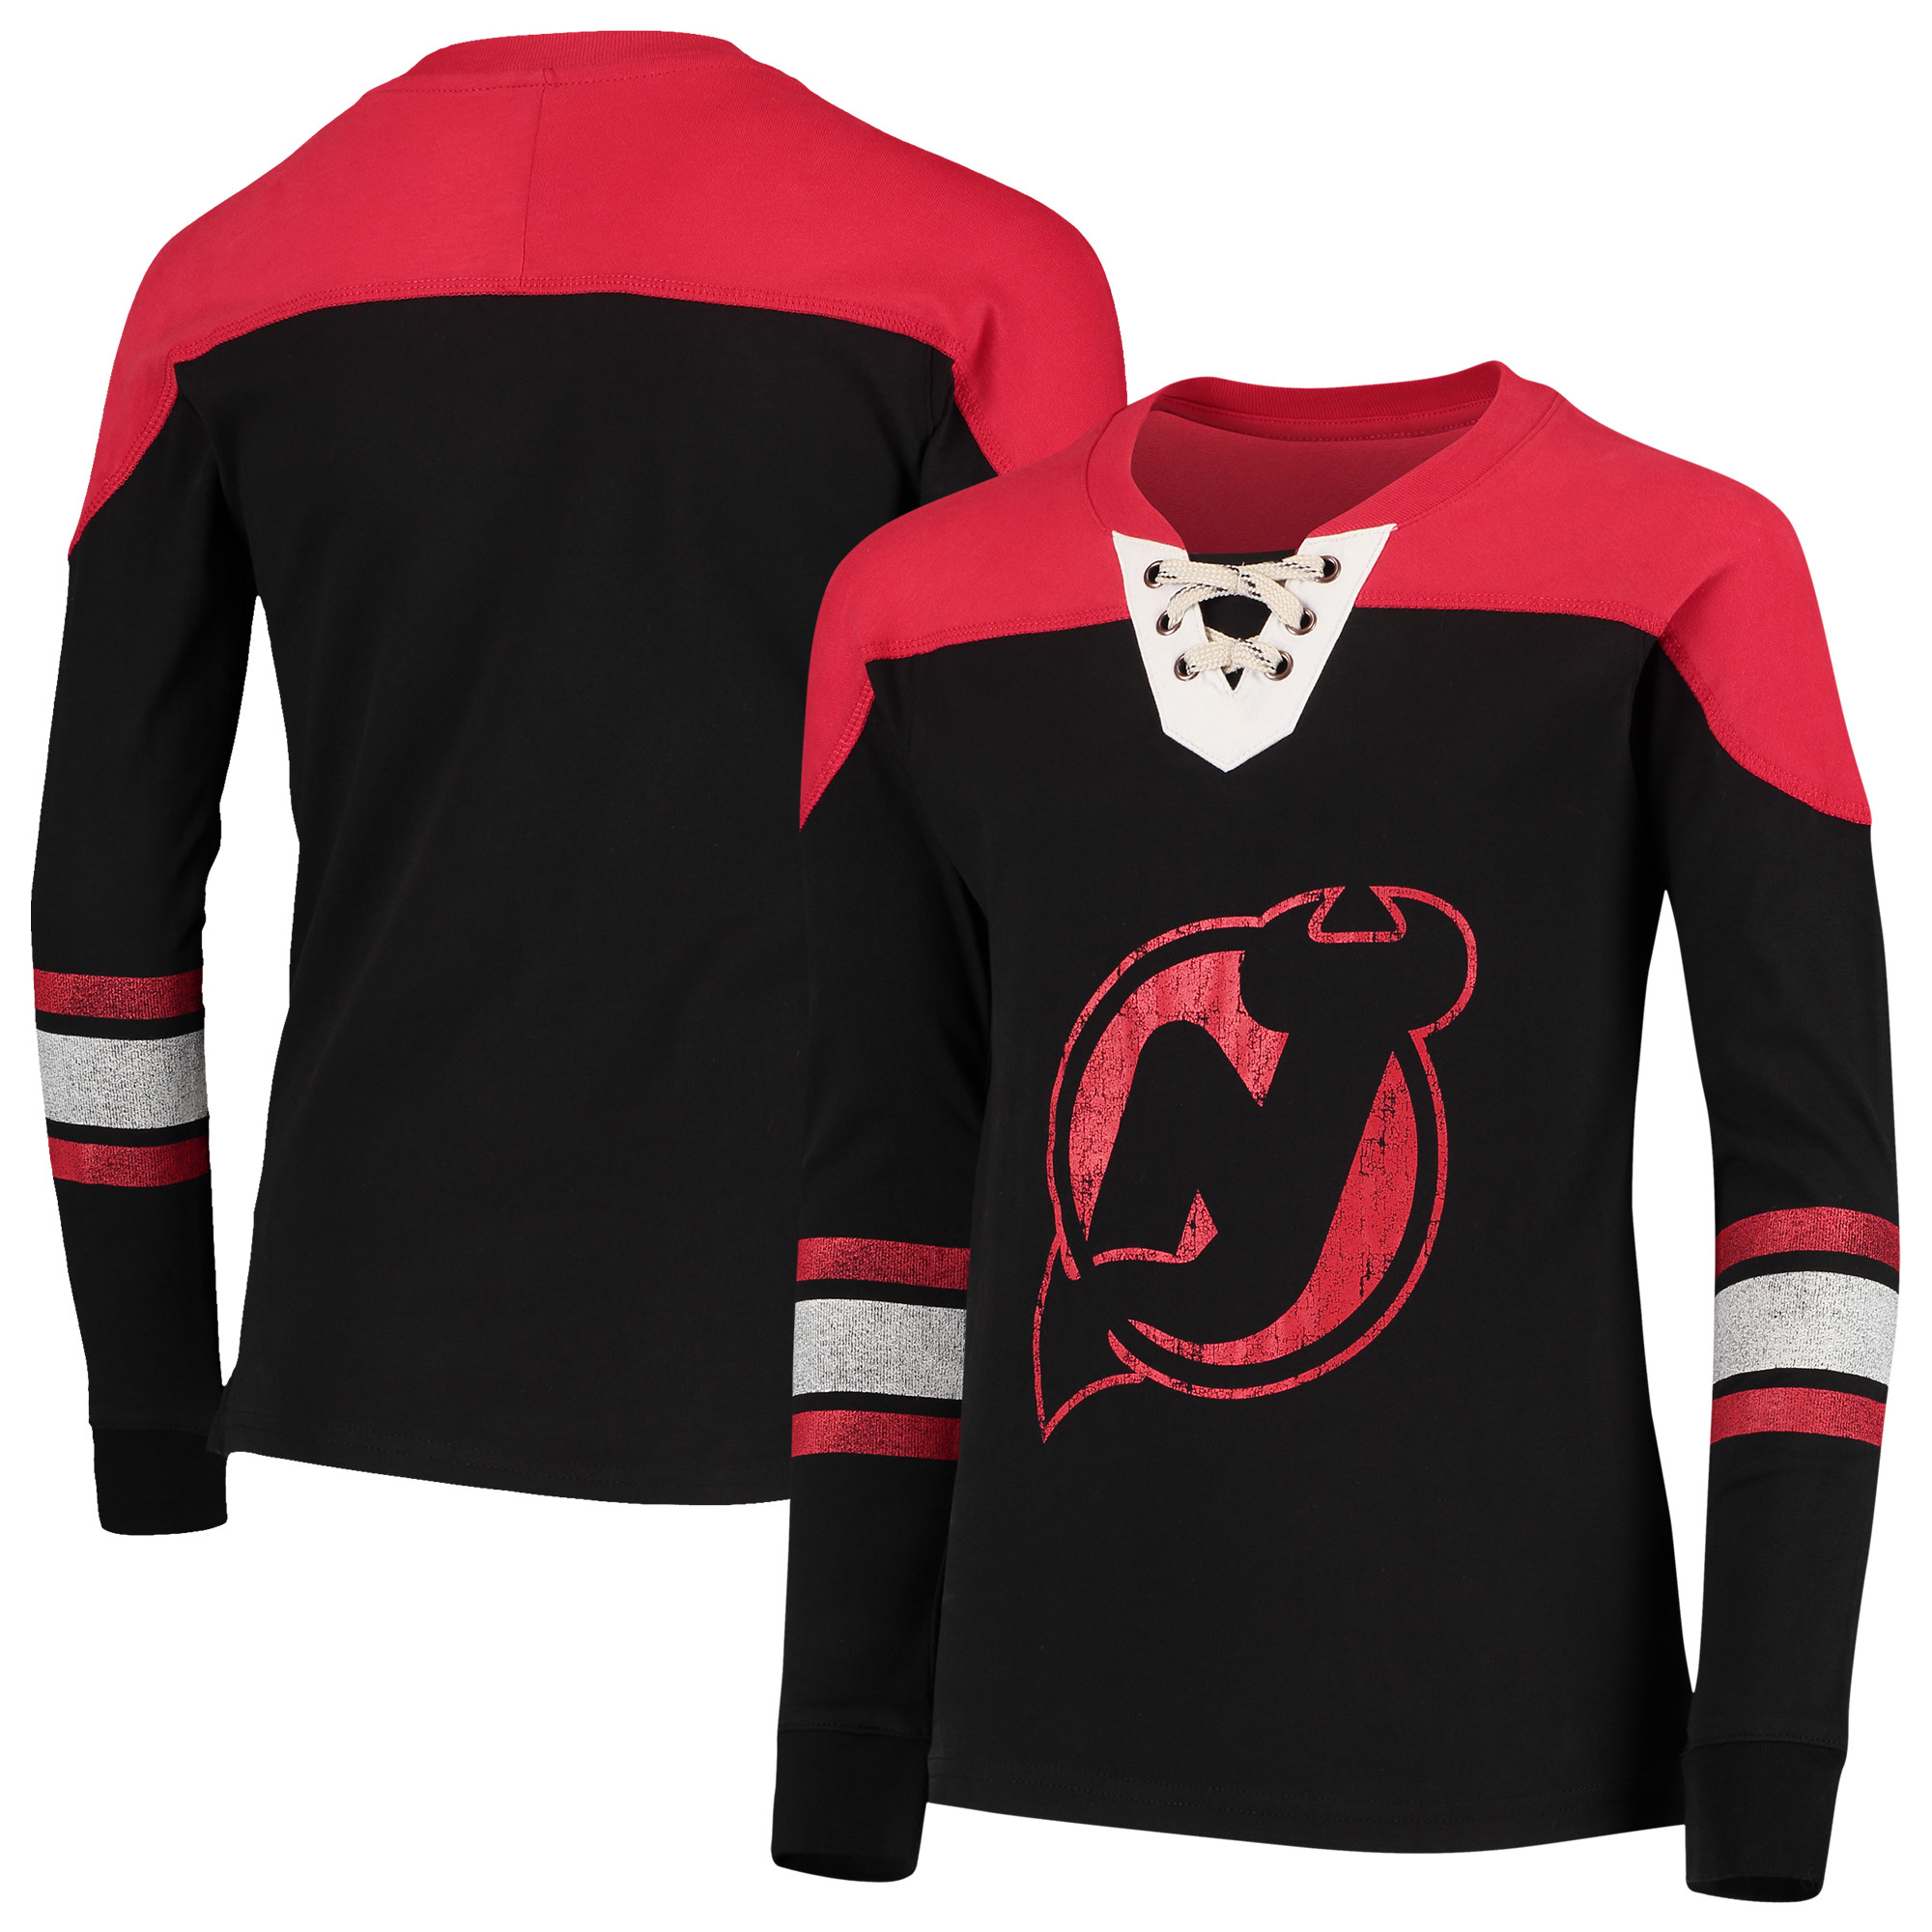 New Jersey Devils Youth Perennial Hockey Lace-Up Crew Sweatshirt - Black/Red